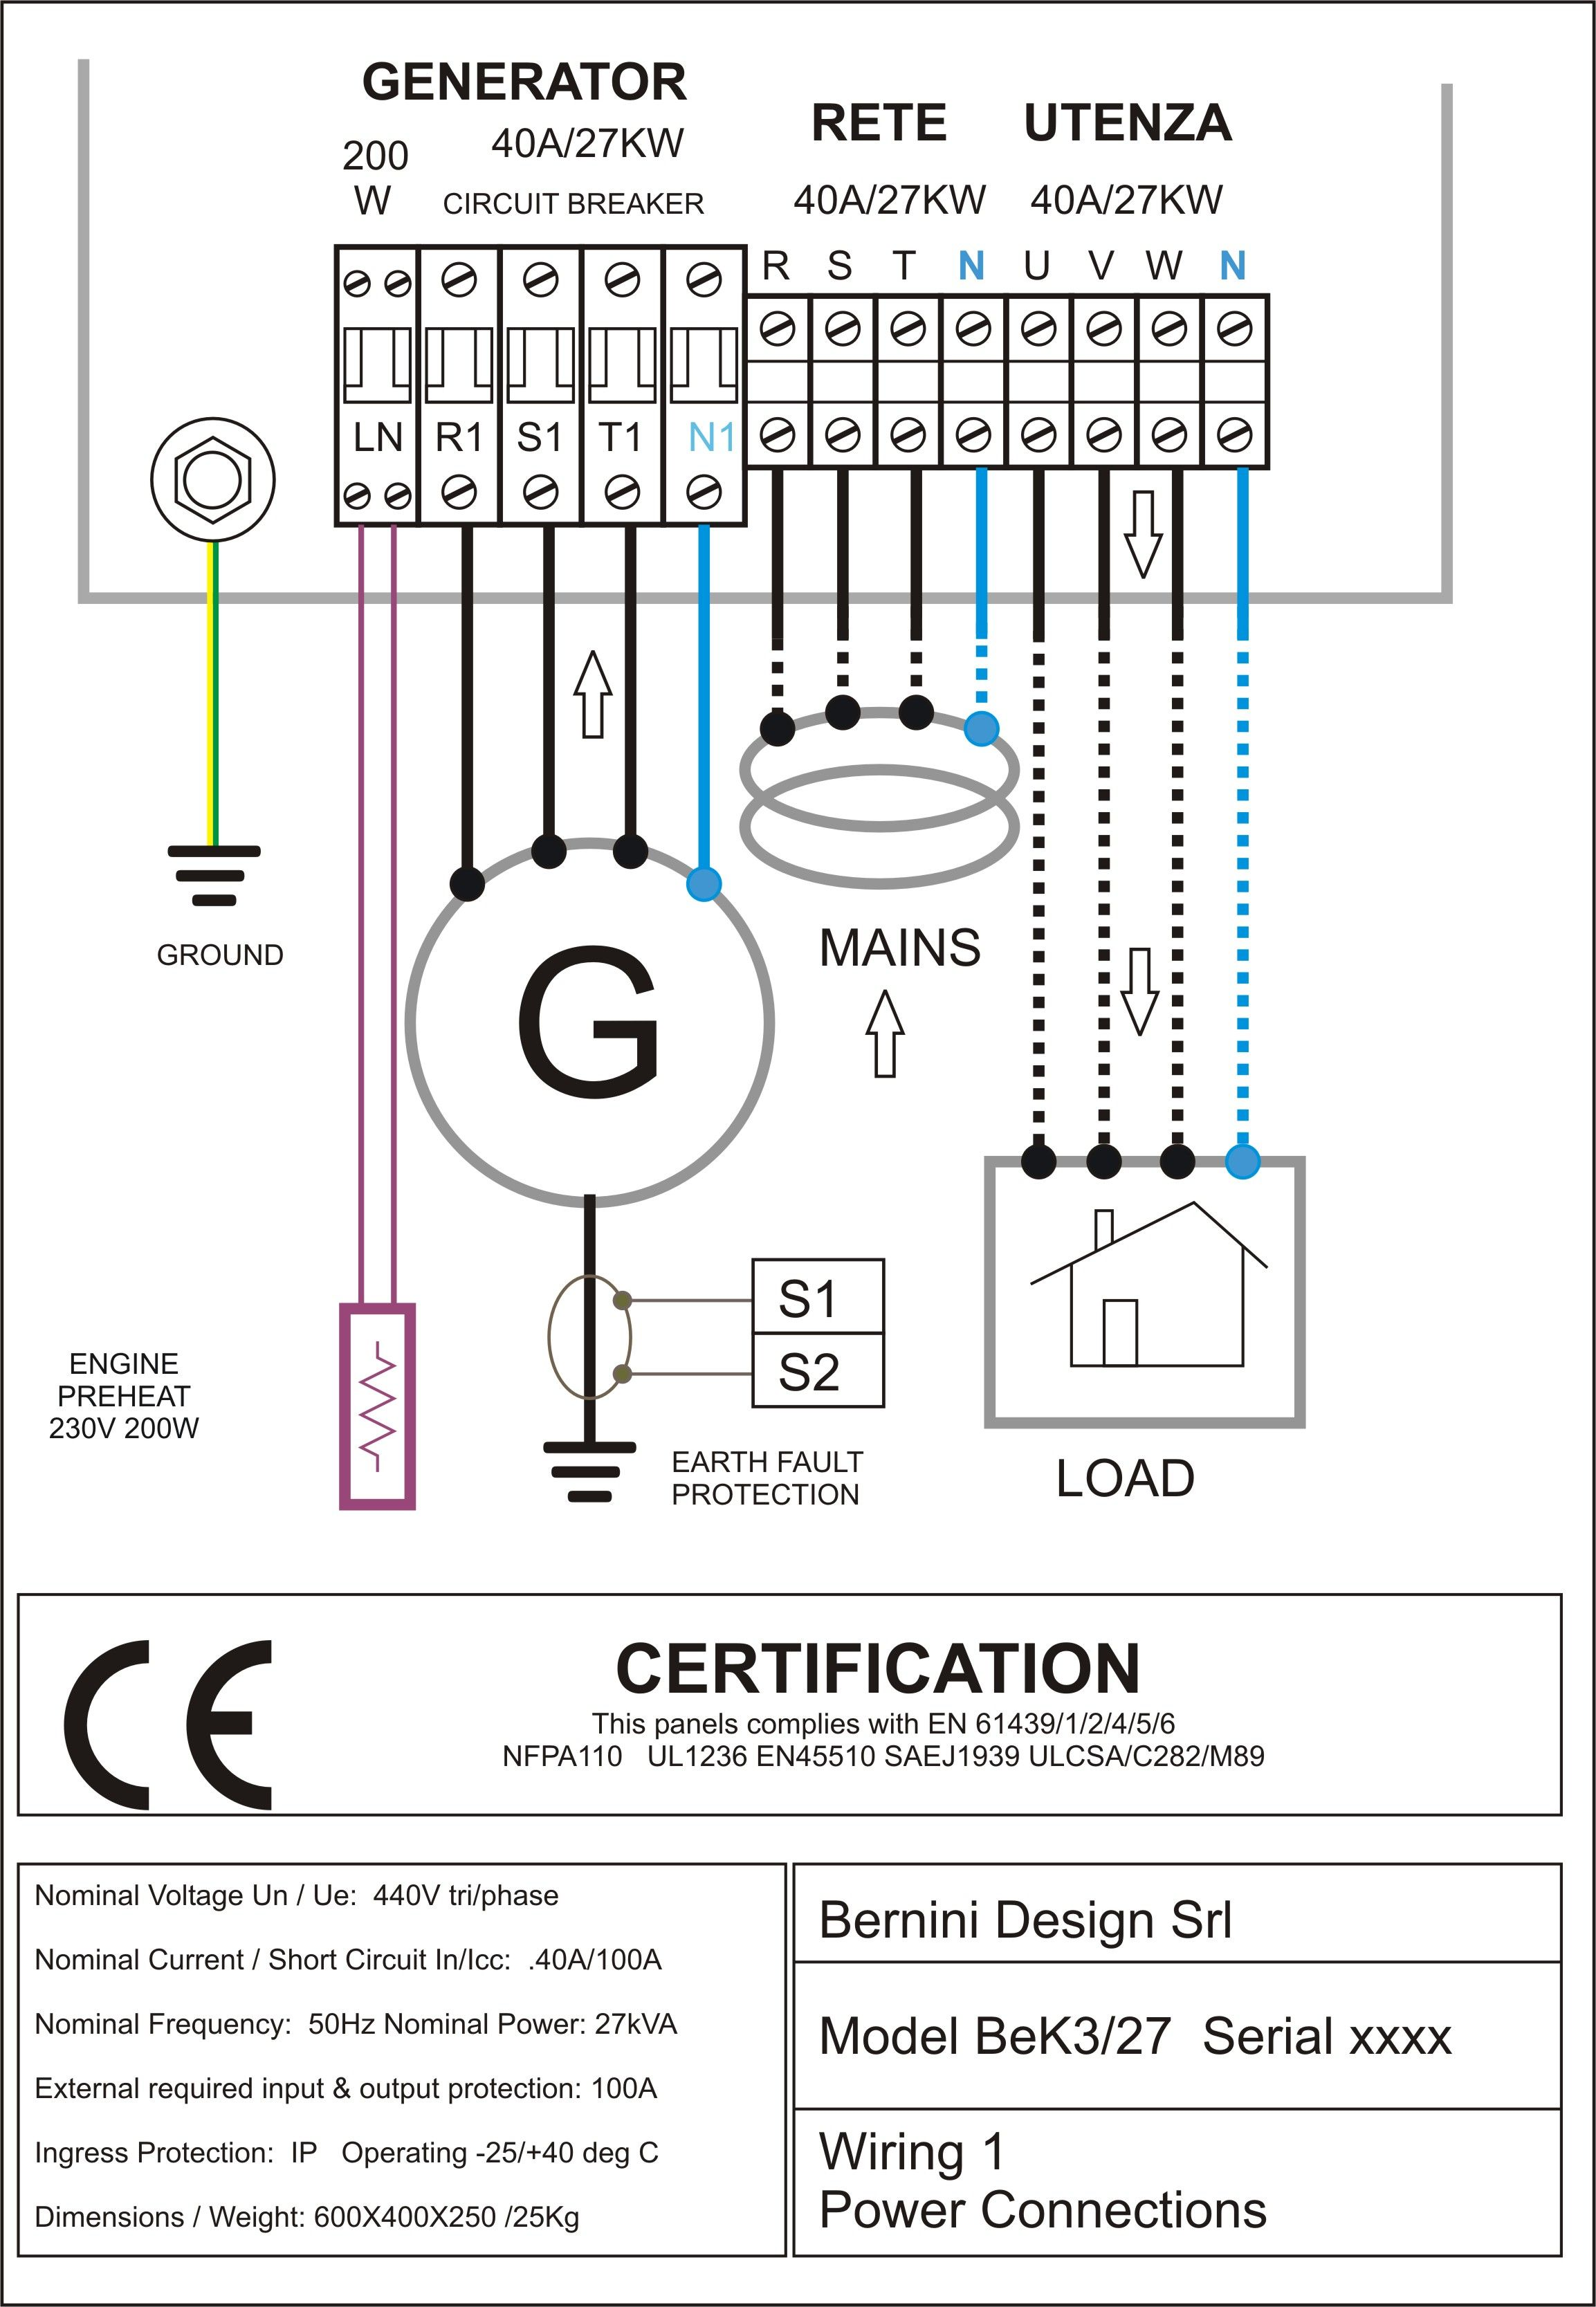 Olympian Generator Control Wiring Schematic on olympian generator drawings, olympian generator fuel capacity, olympian generator specifications, olympian generator diagram, olympian generator installation manual, olympian generator d200p4 2001, electric generator schematic,